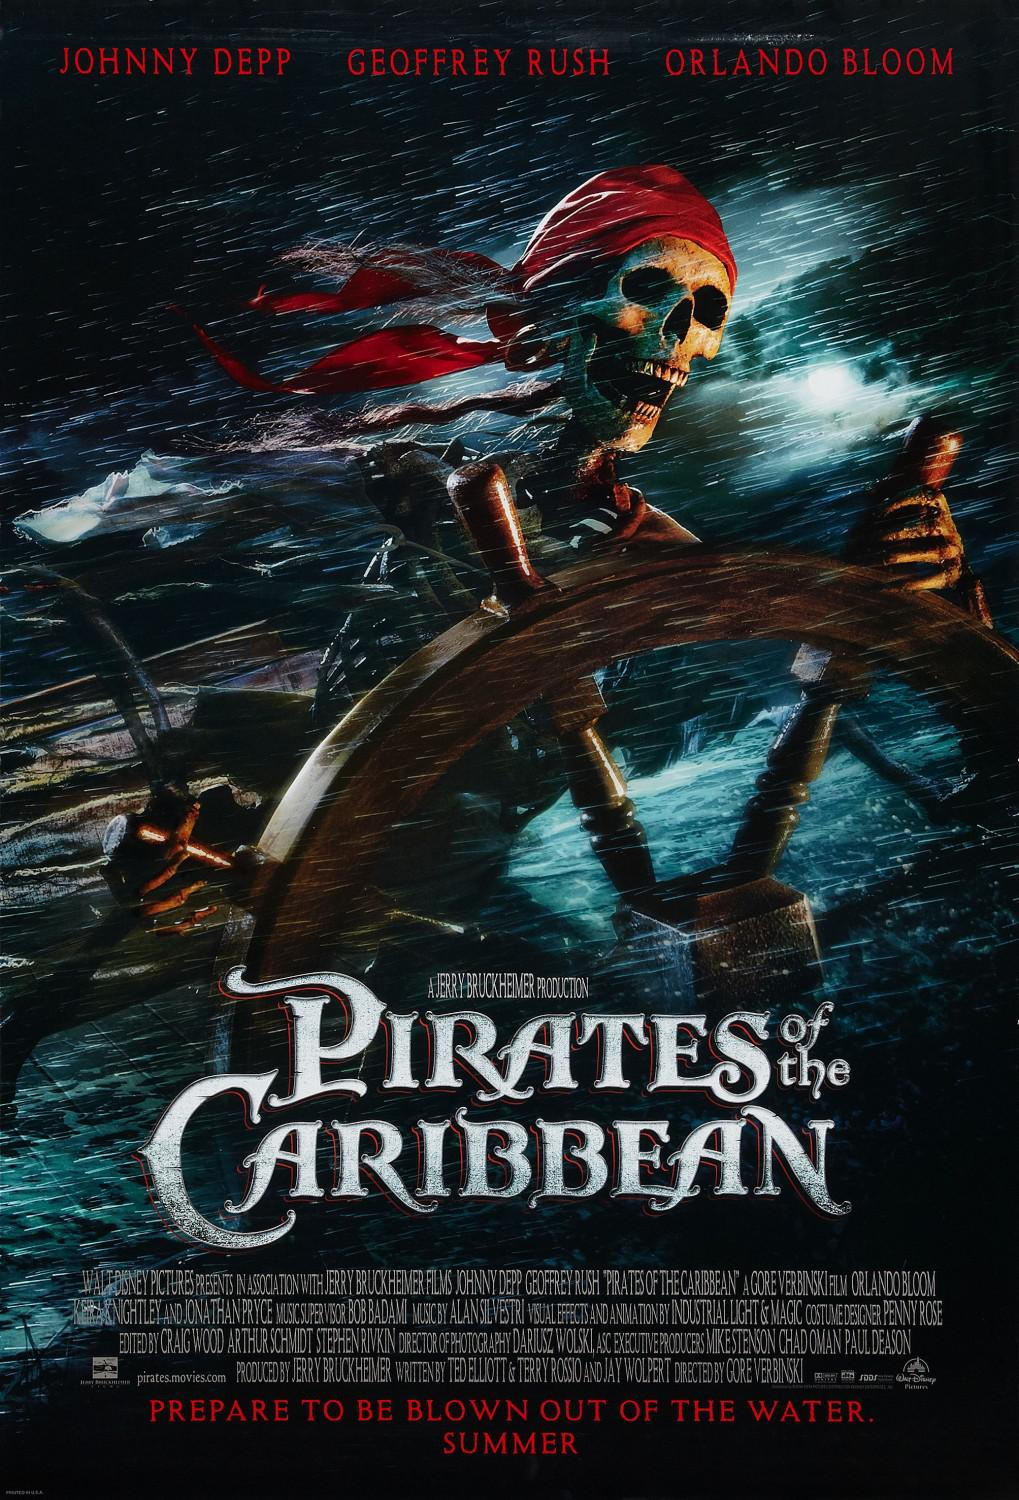 Pirati dei Caraibi - La Maledizione della prima Luna - Pirates of the Caribbean: The Curse of the Black Pearl - poster